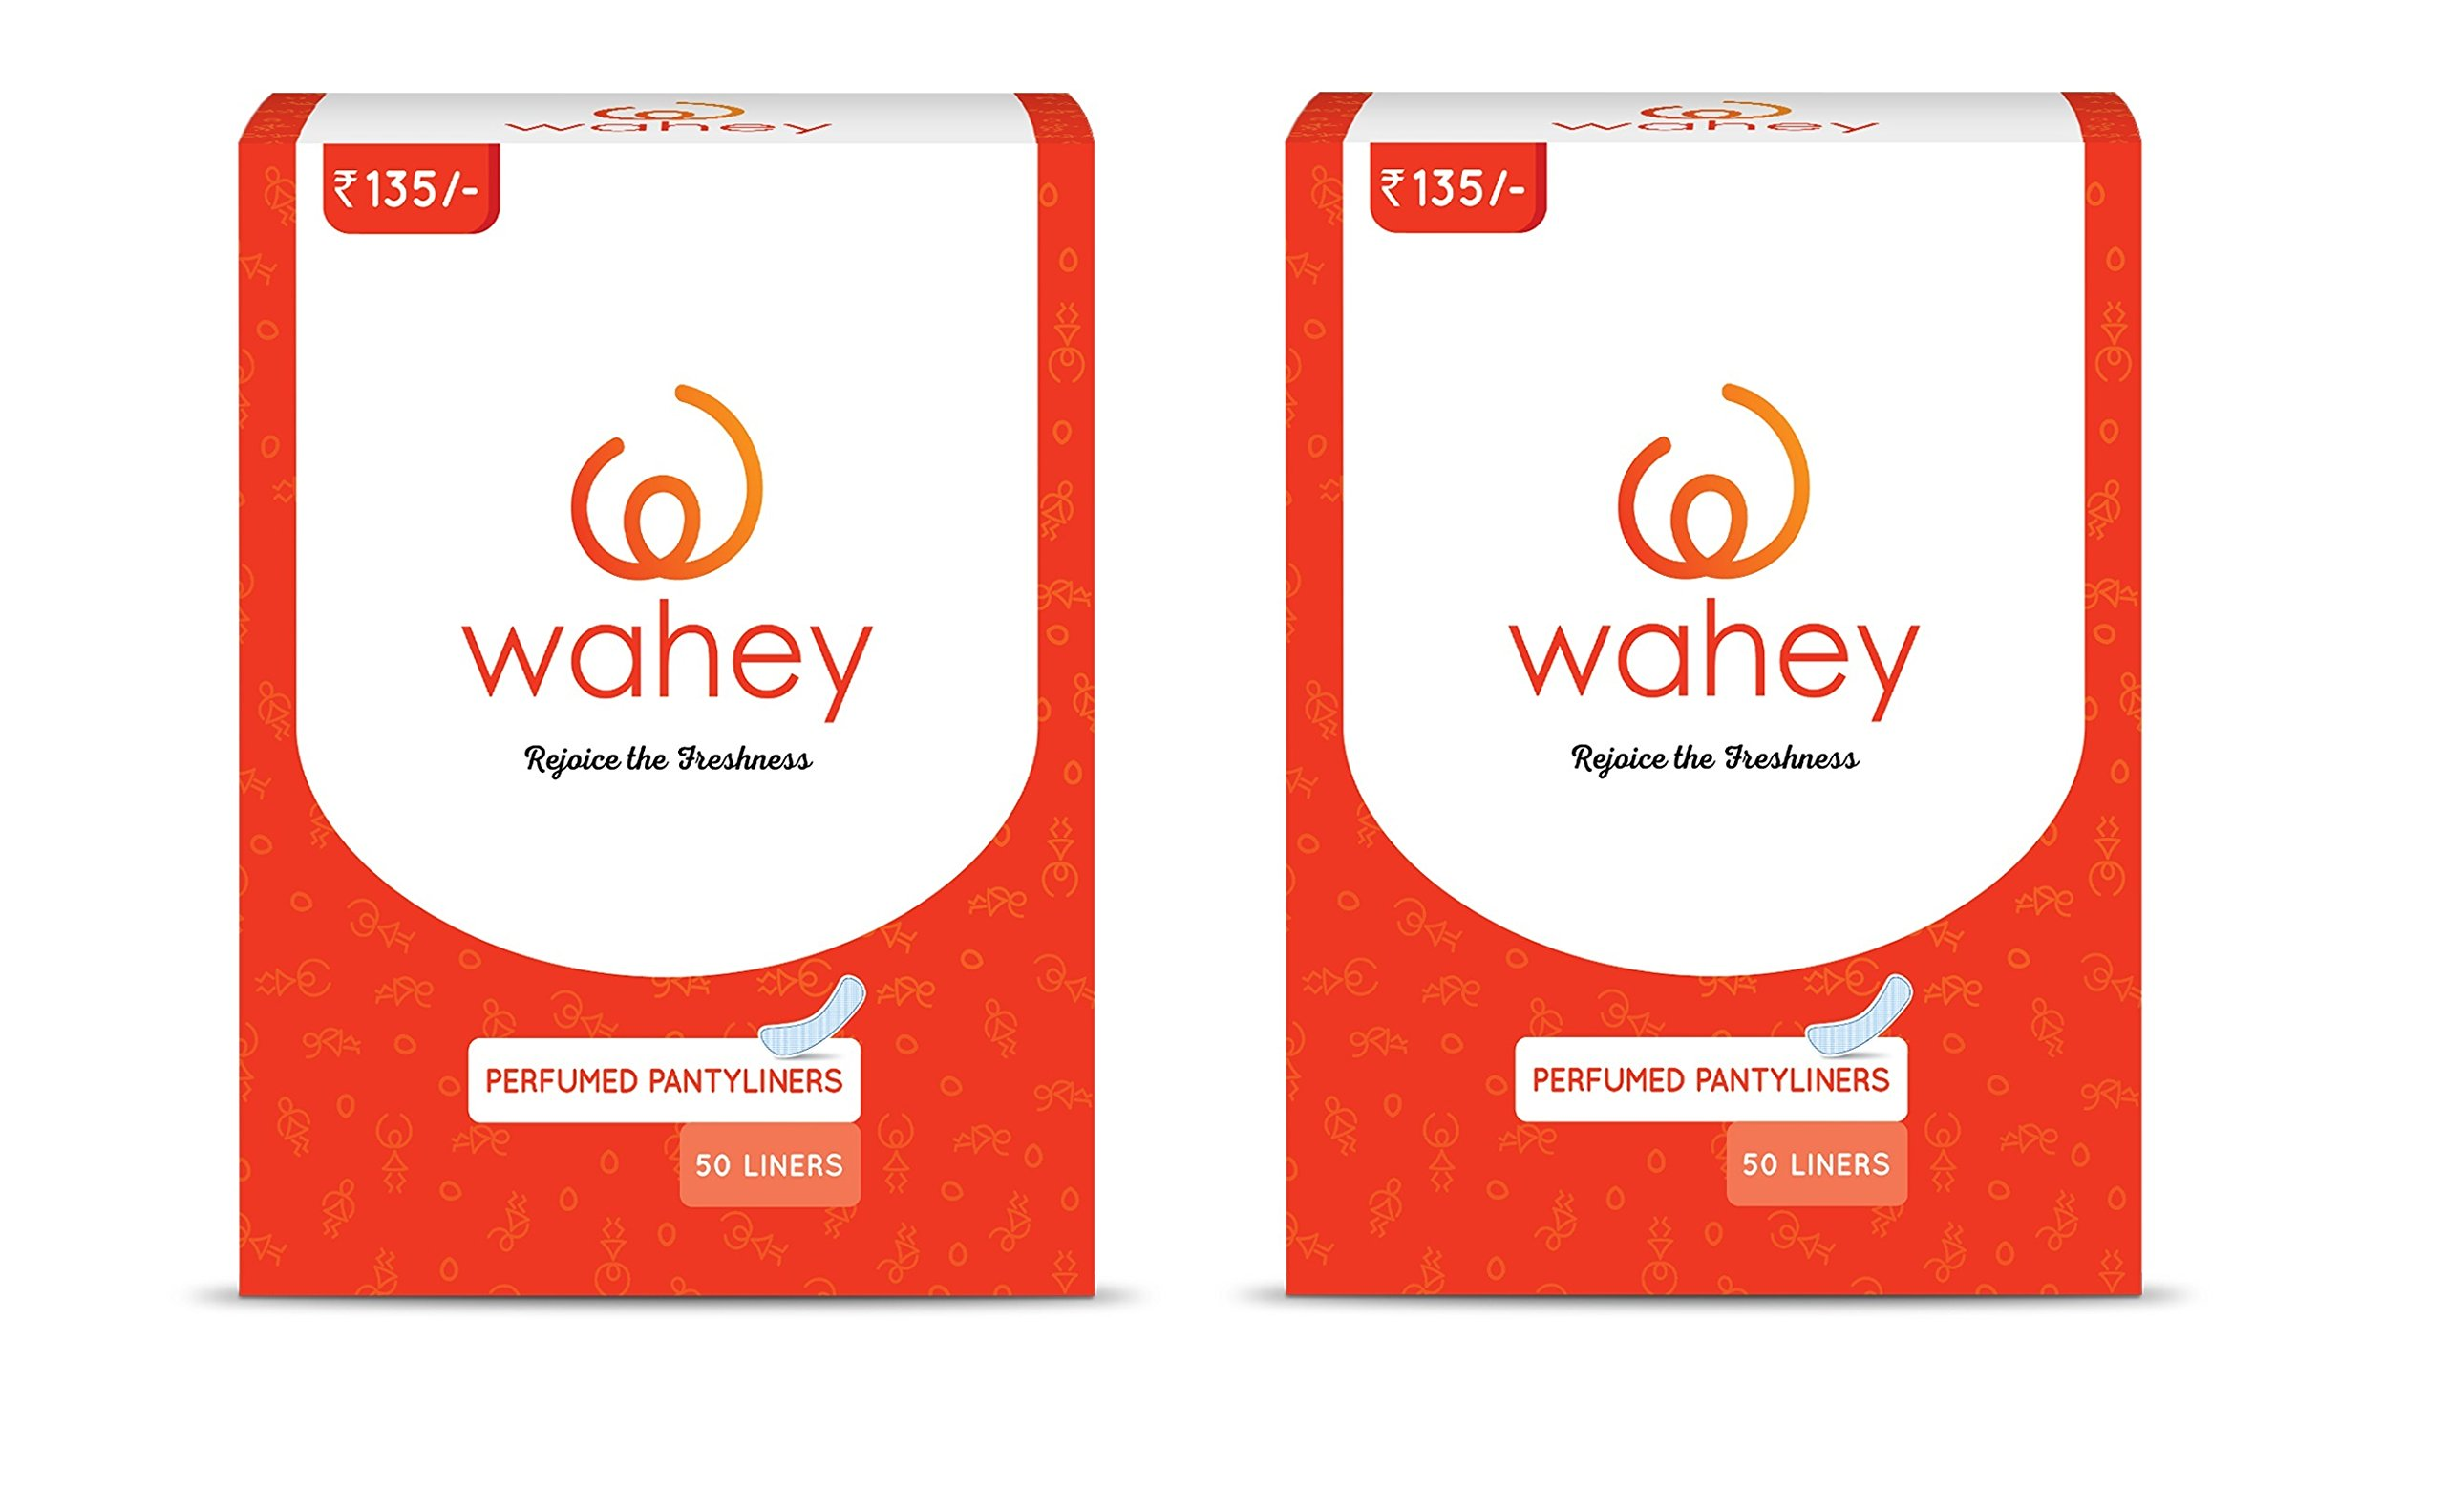 Wahey Perfumed Panty Liners/Pantyliners With Cottony Covering, Pack Of 2 (100 pcs) product image